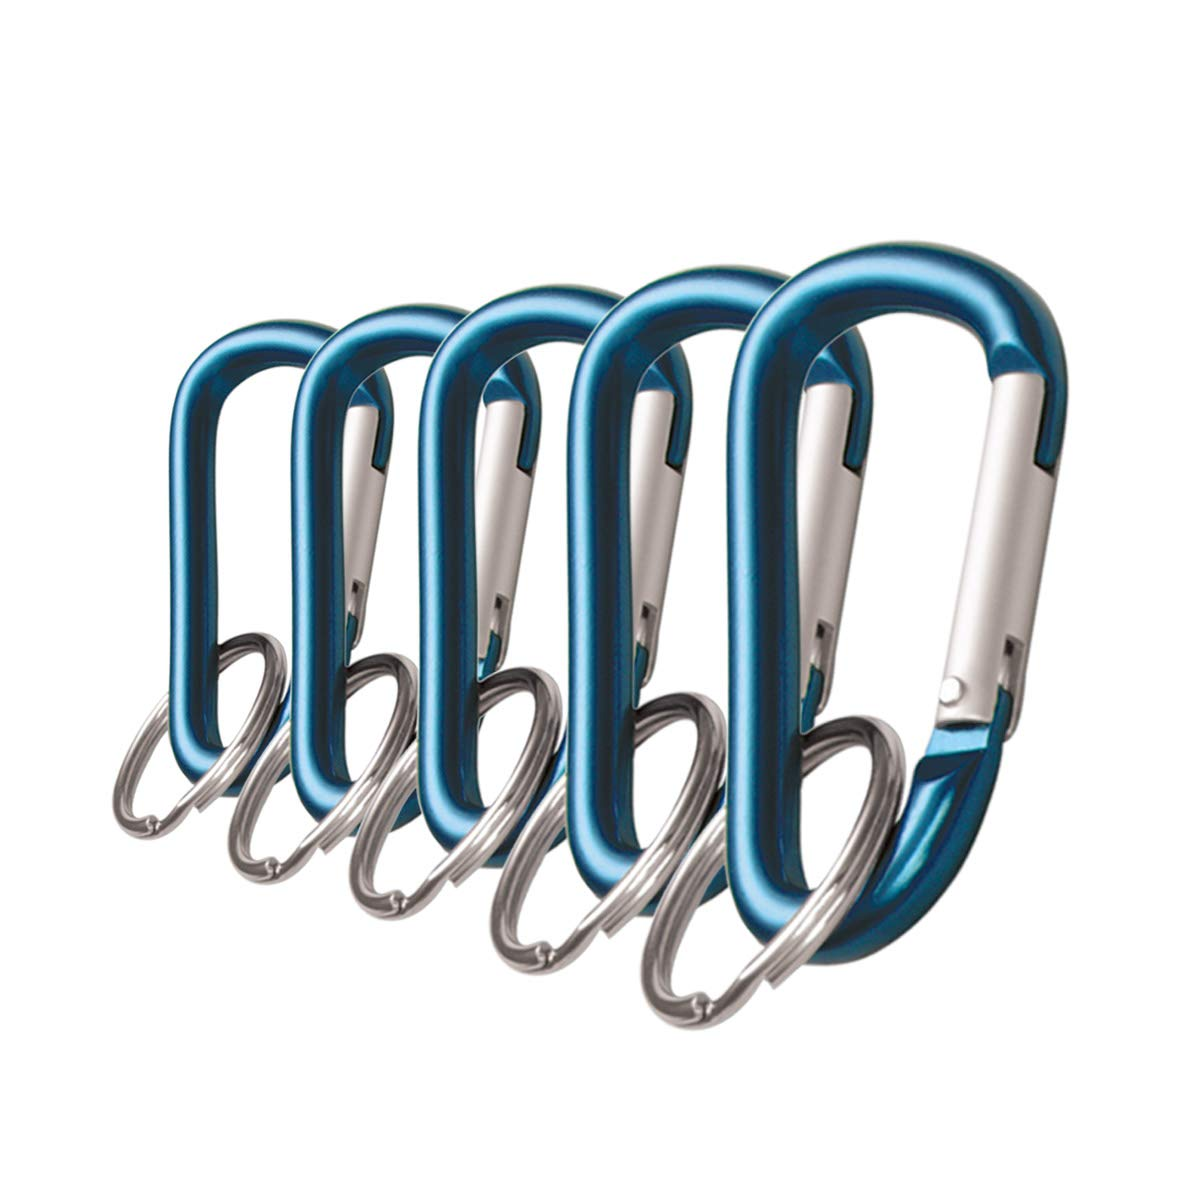 Lucky Line 4613005 Aluminum 3-1/8'' Carabiner Clip Set Snap Link Key Chain (5 per Pack), Blue